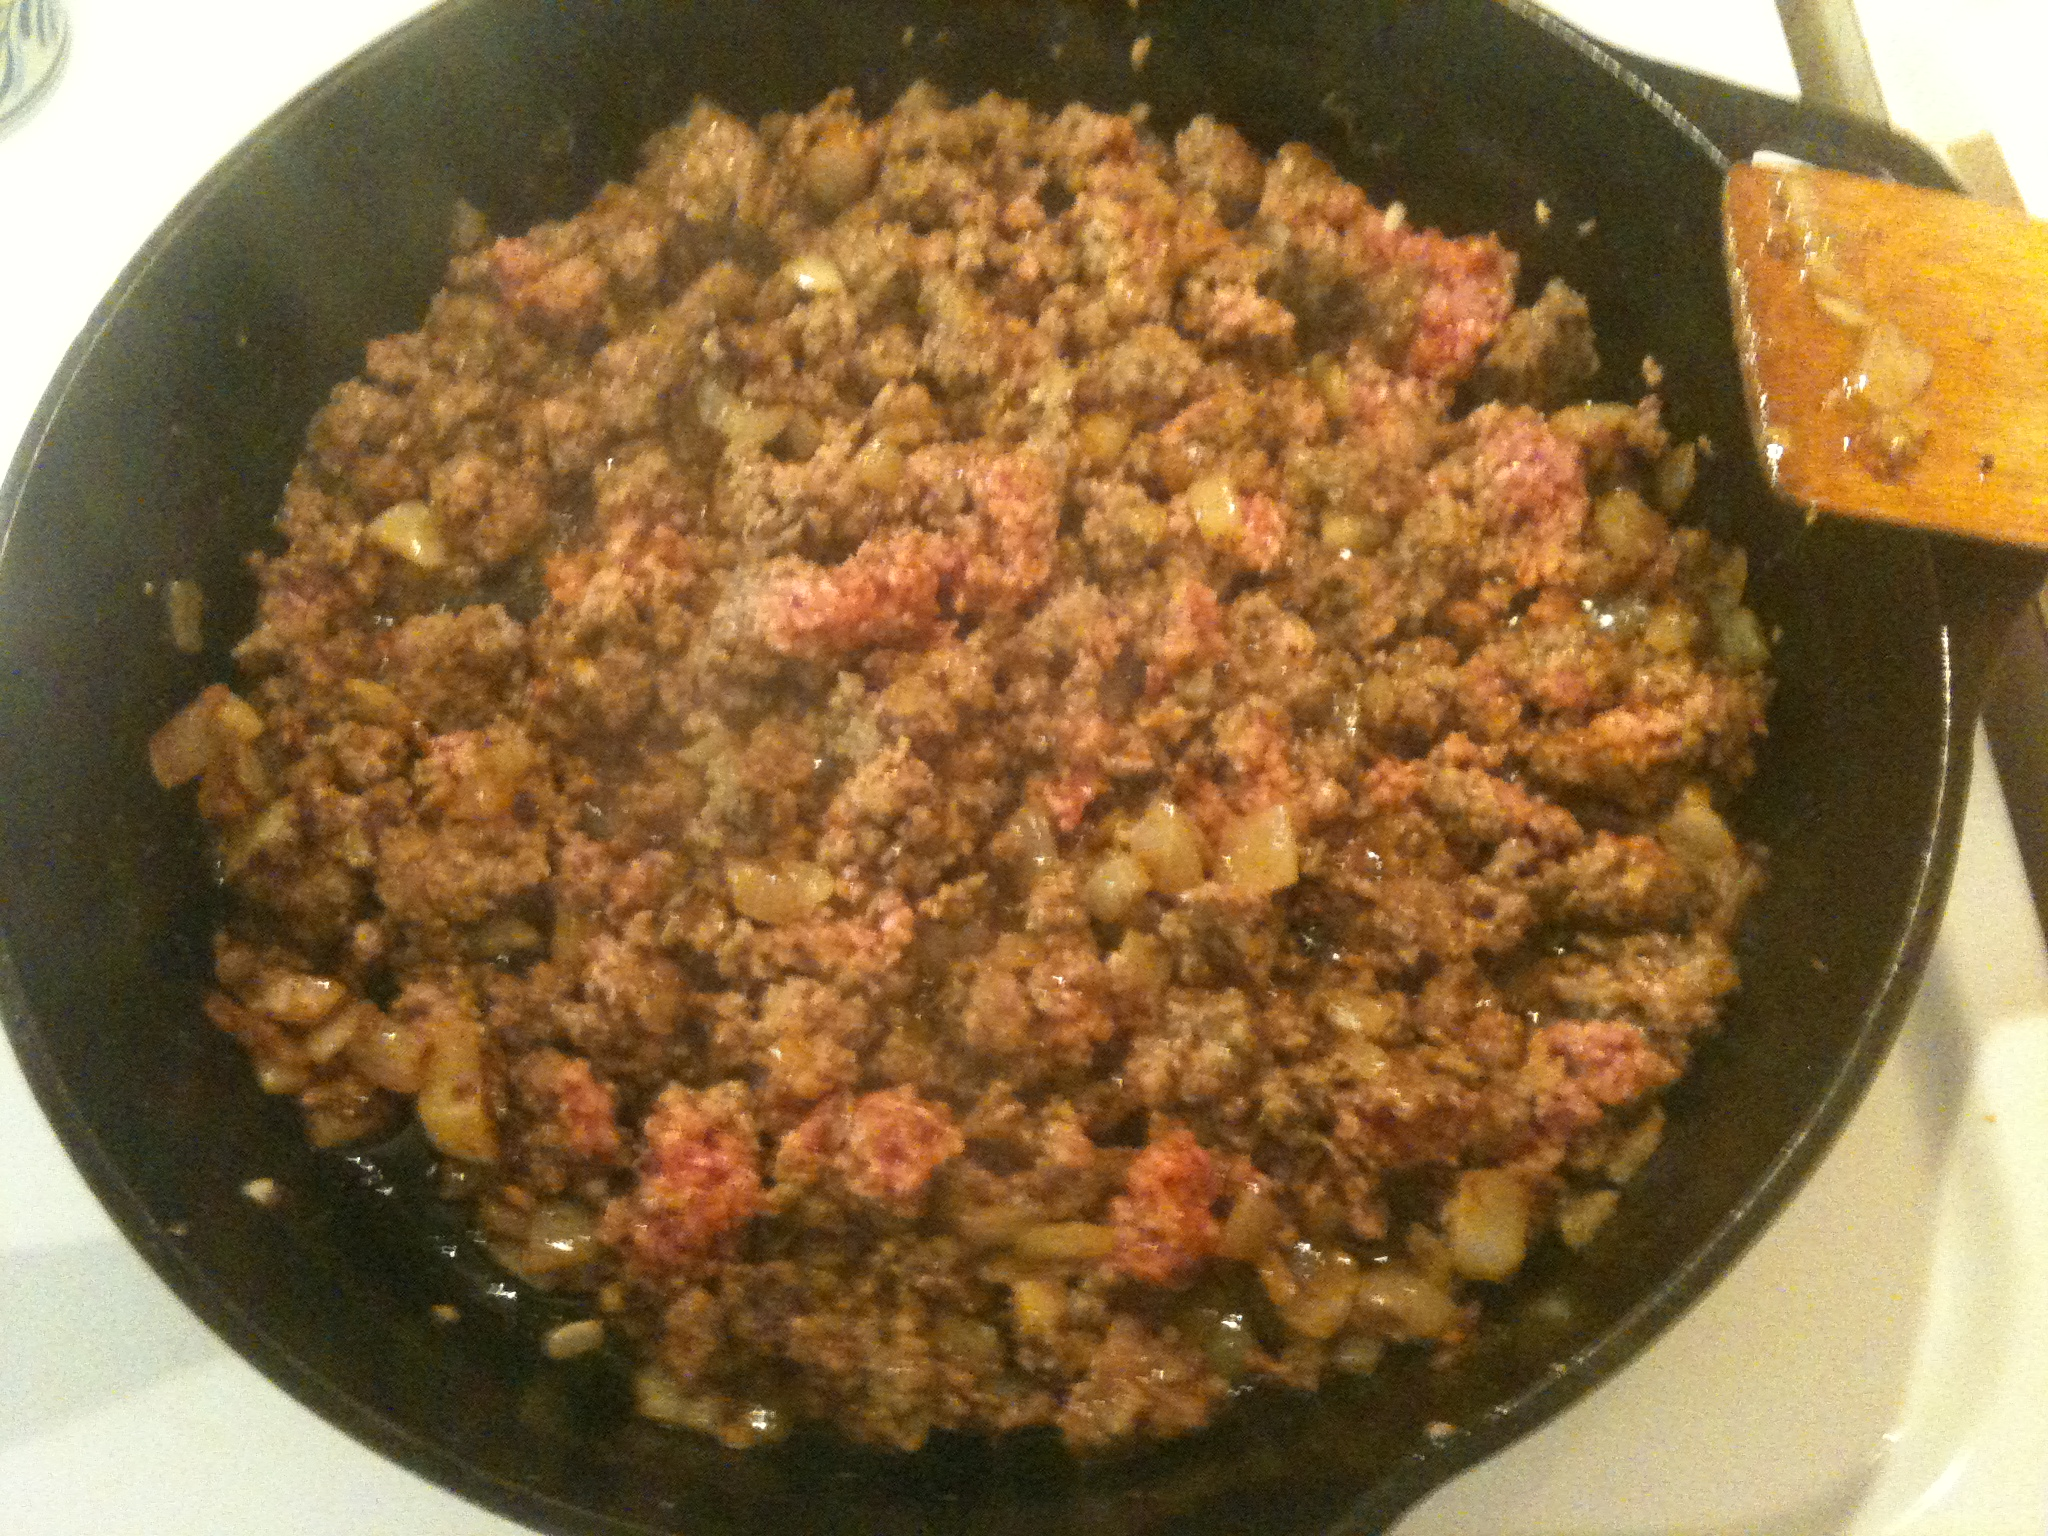 MaidRite Ground Beef Cooking